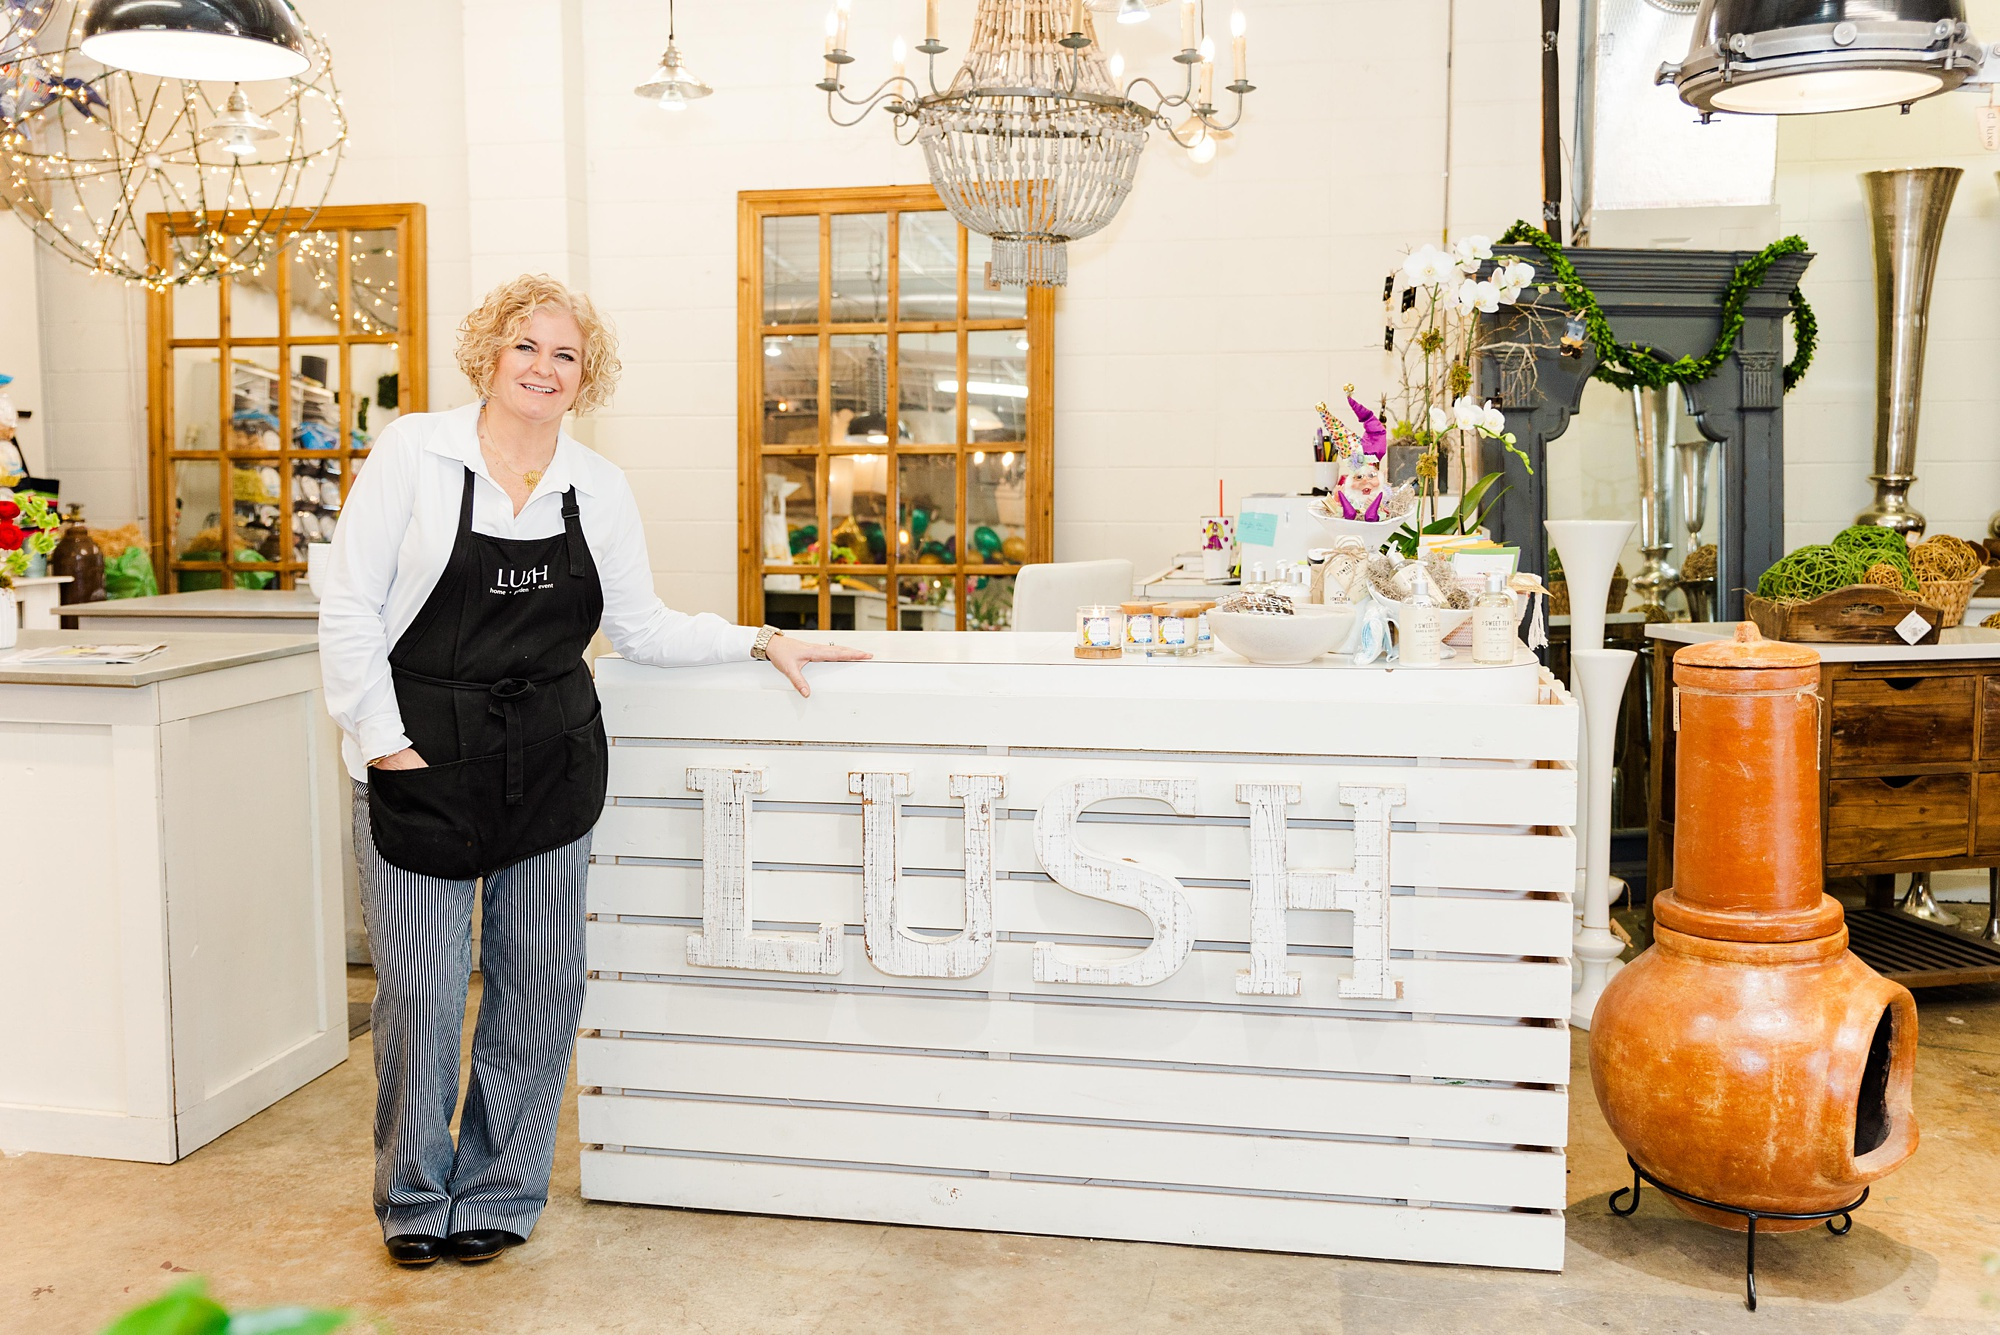 owner poses with custom counter at LUSH